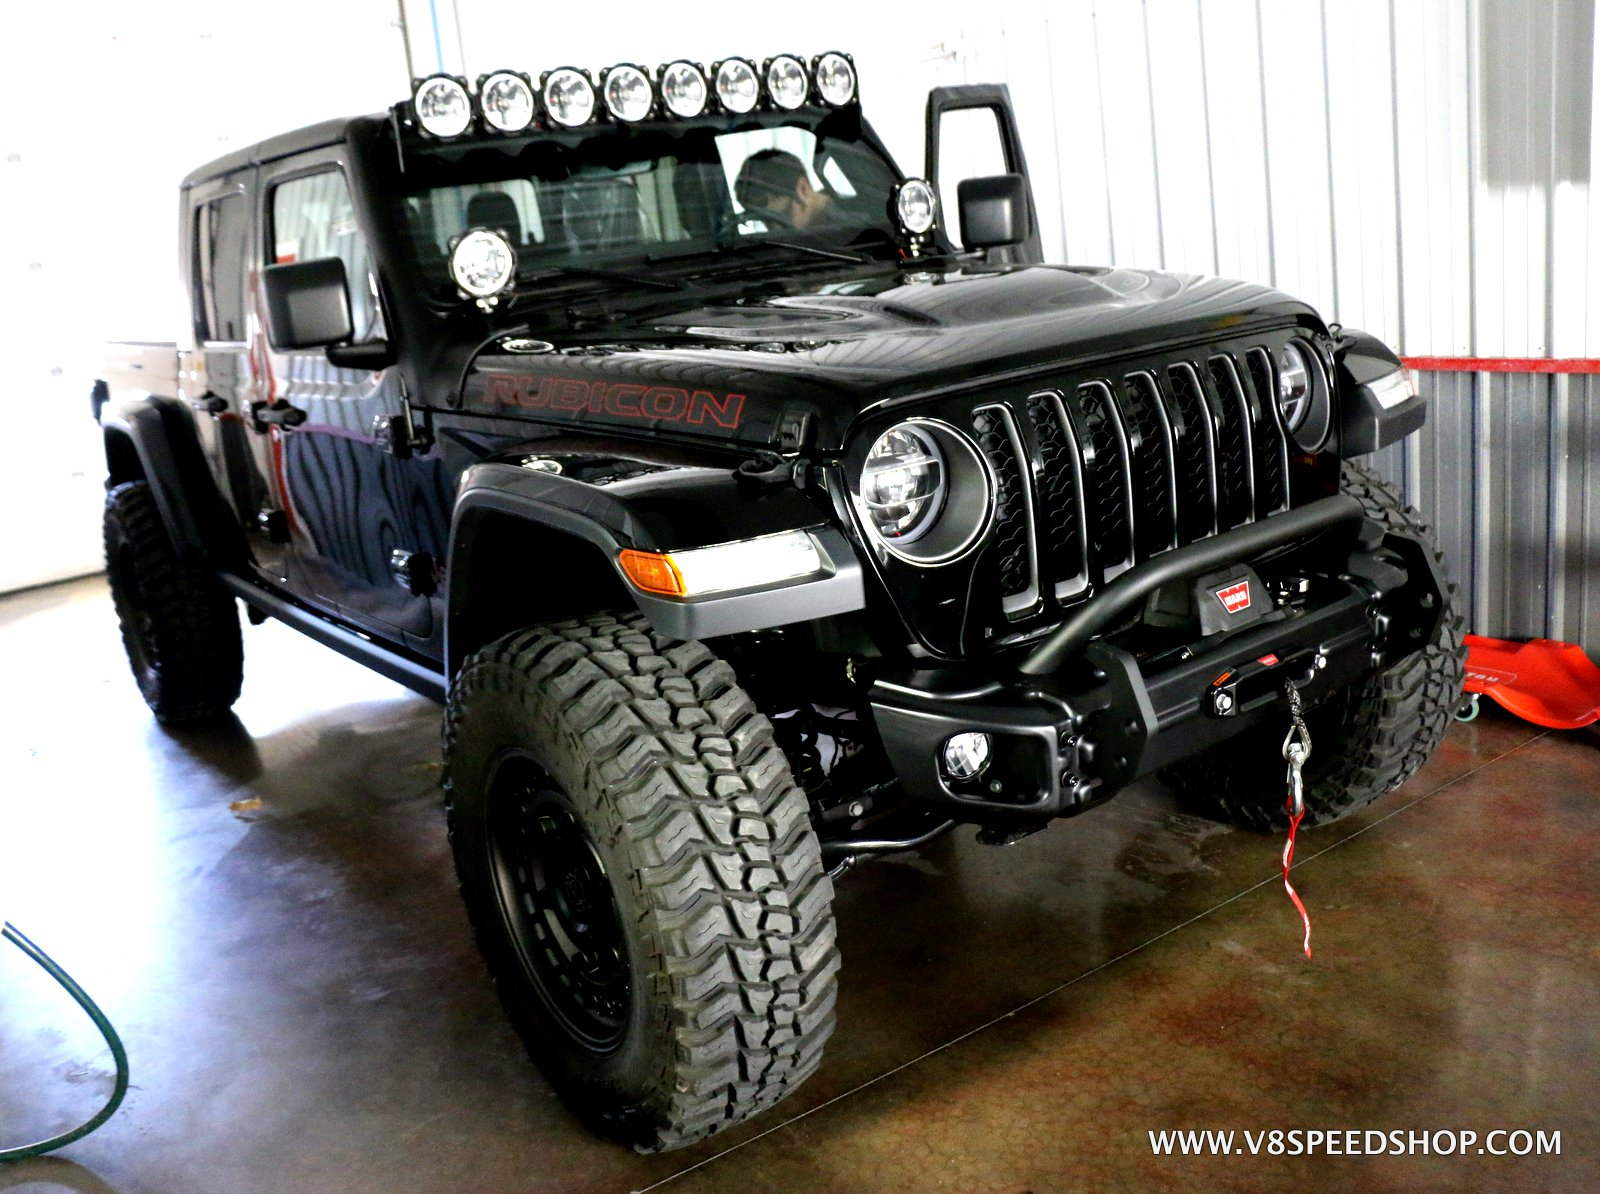 2020 Jeep Gladiator Lighting, Bumper, and Winch Upgrades at the V8 Speed and Resto Shop